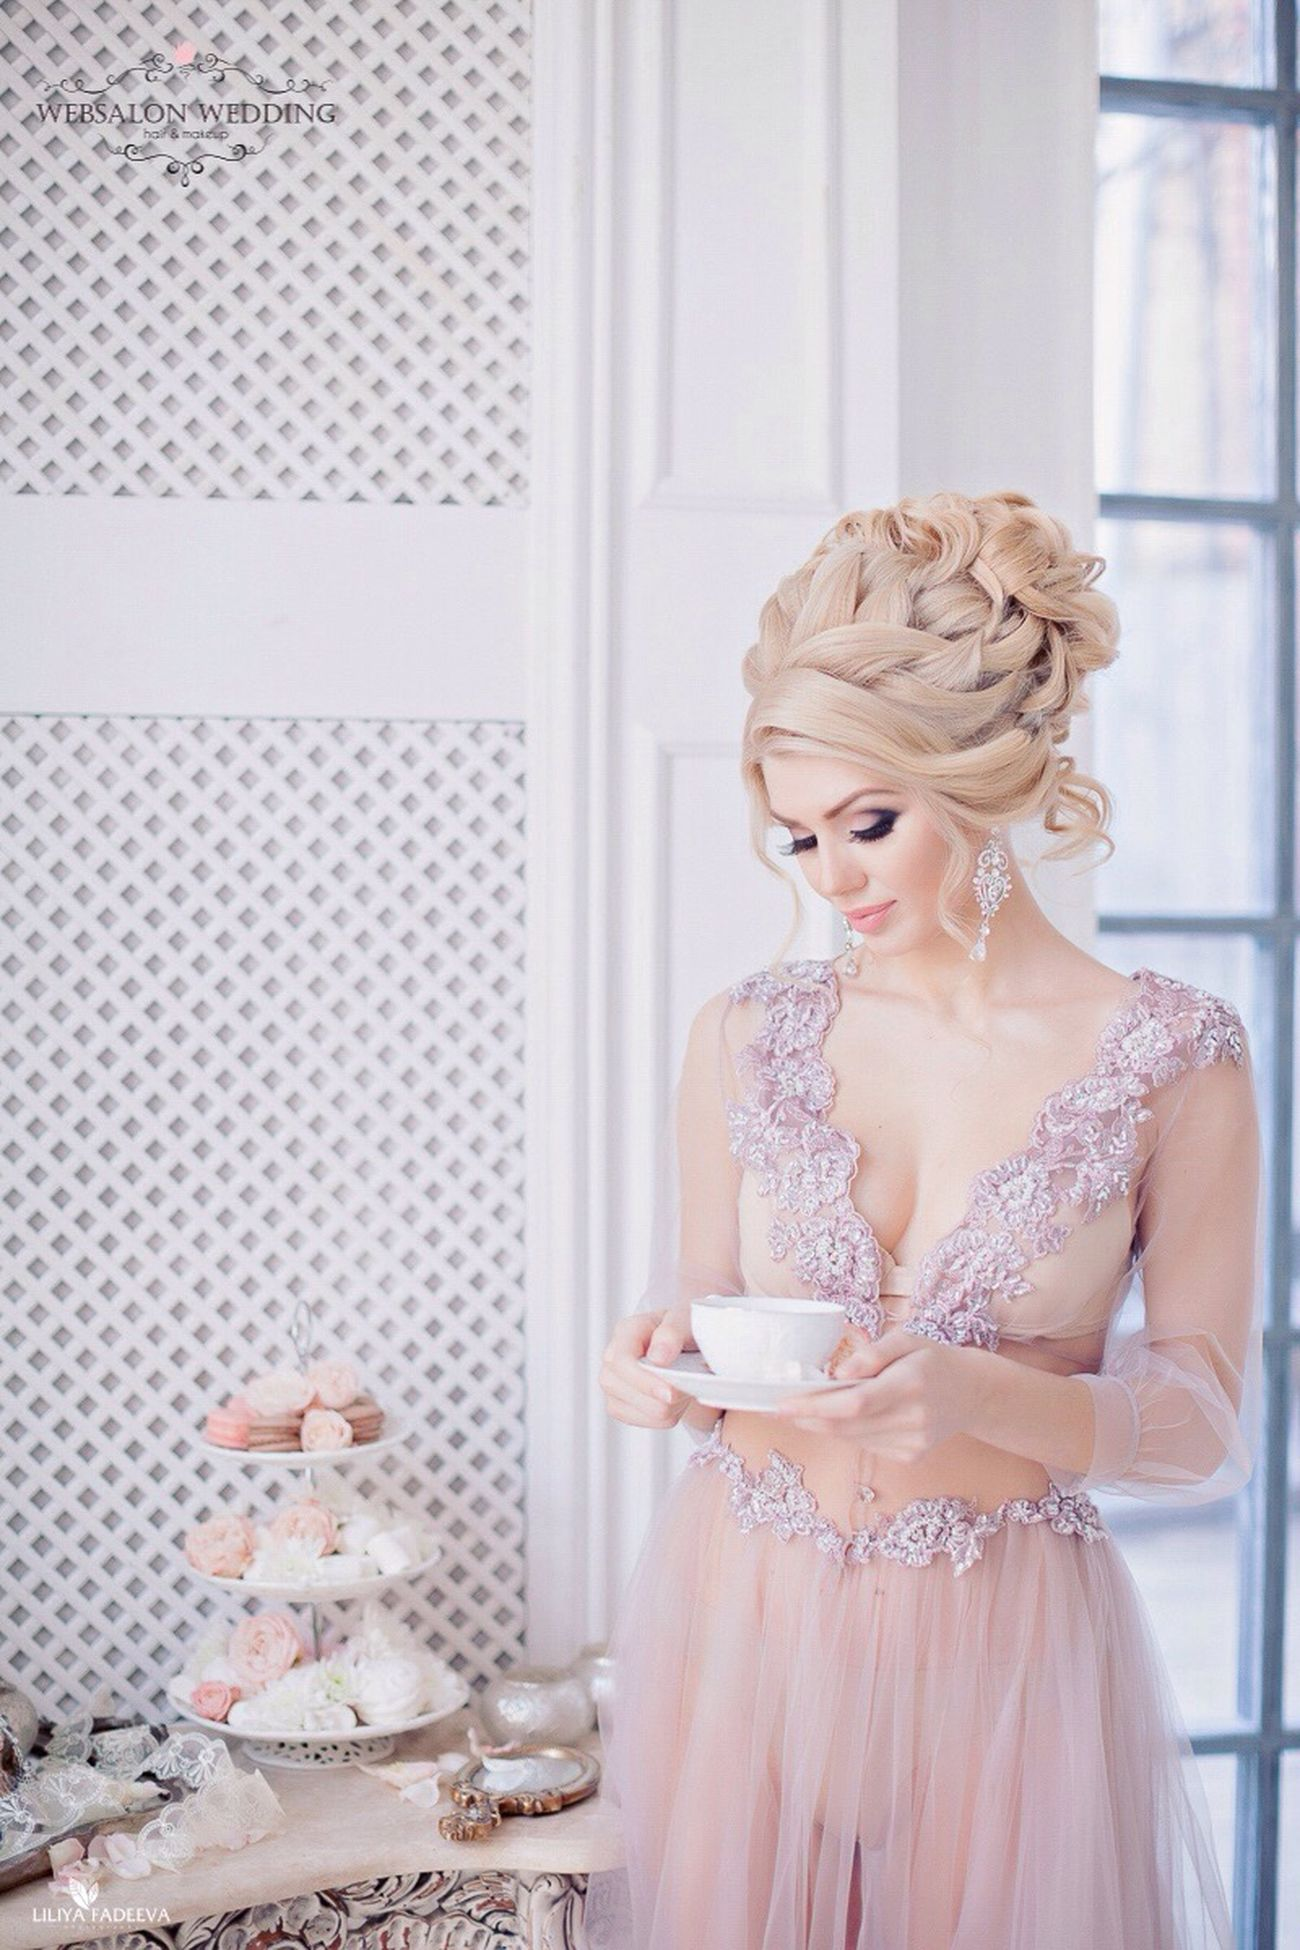 Girl Long Hair Happy Wedding Hairstylist Blondehair Novia2015 Blondie Weddingdetails Hairdresser Blonde Hair